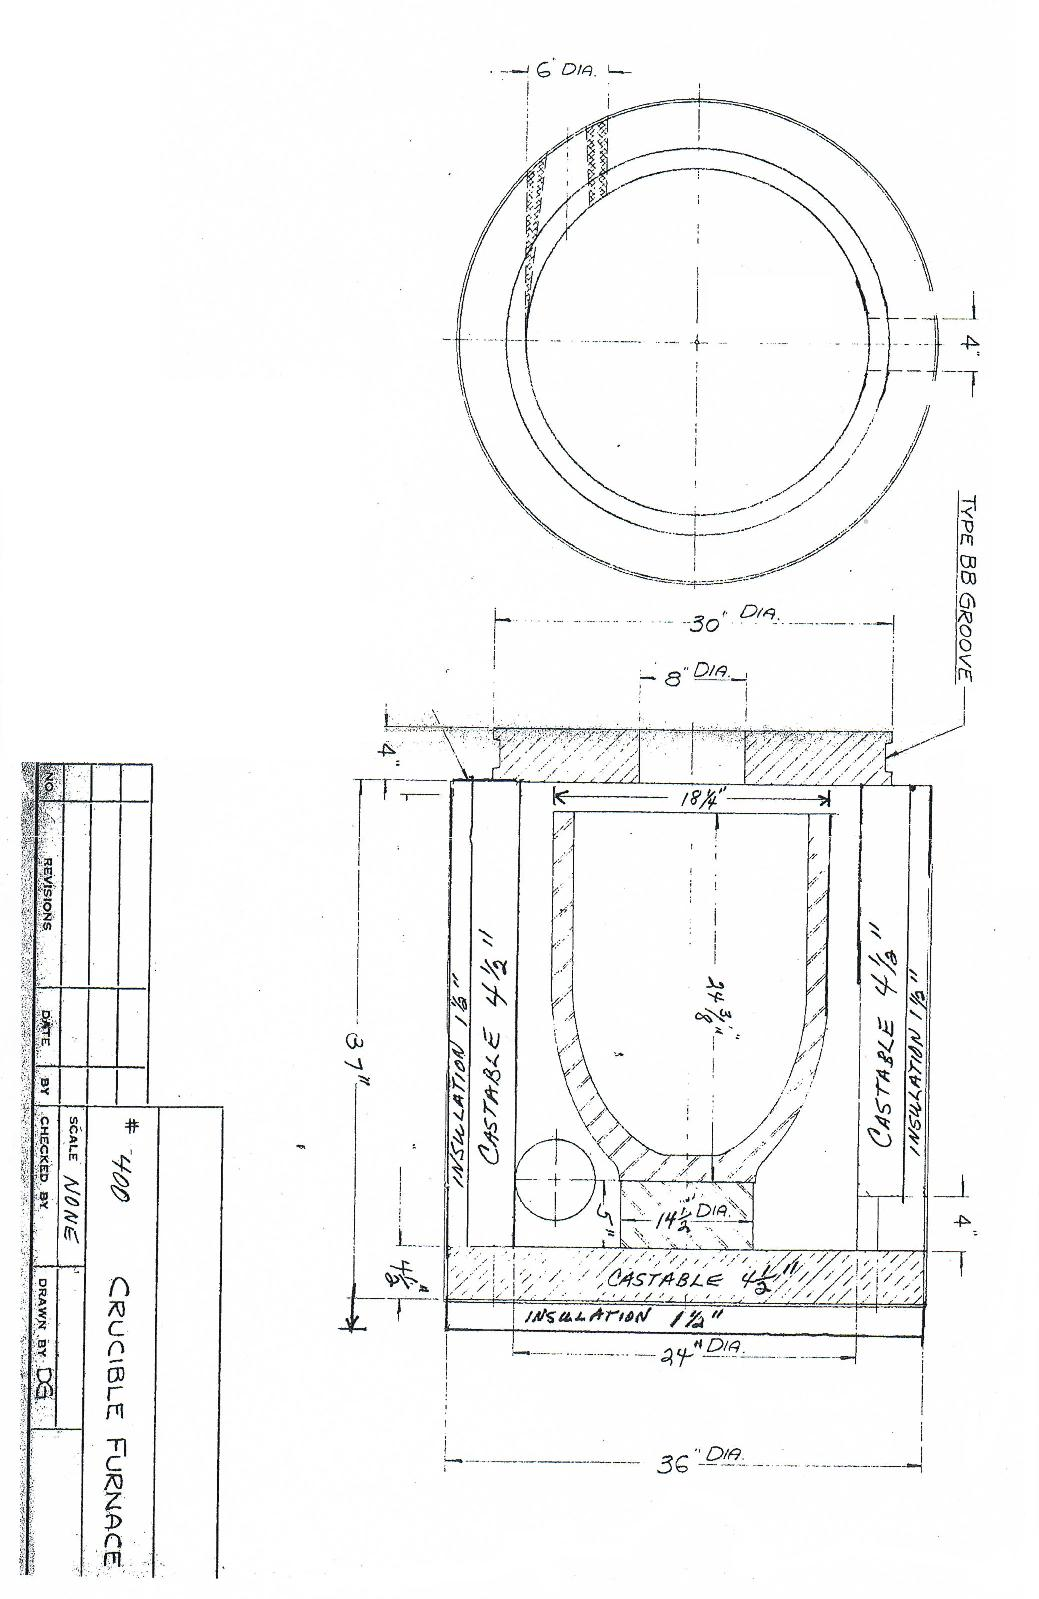 Graphite Furnace Schematic